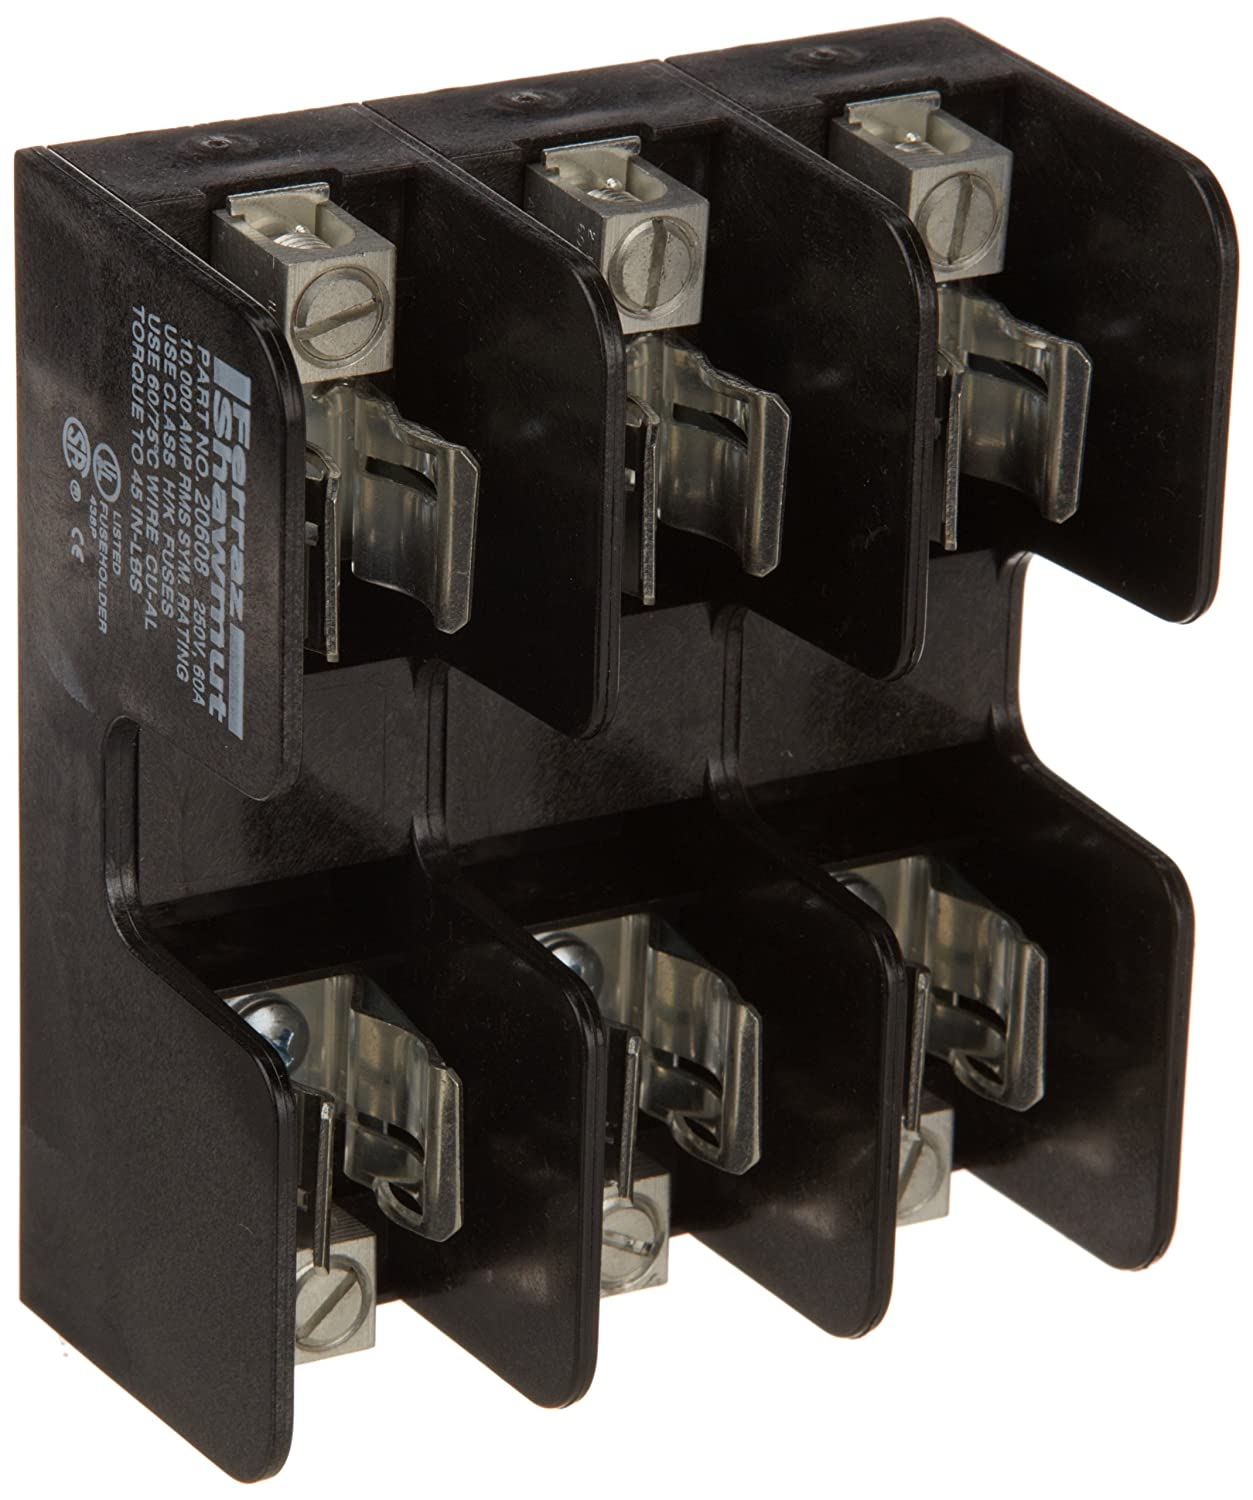 mersen 20608 one-time class k-5 recommended fuse block with box connector,  250v, 31-60 ampere, 3 pole: amazon com: industrial & scientific